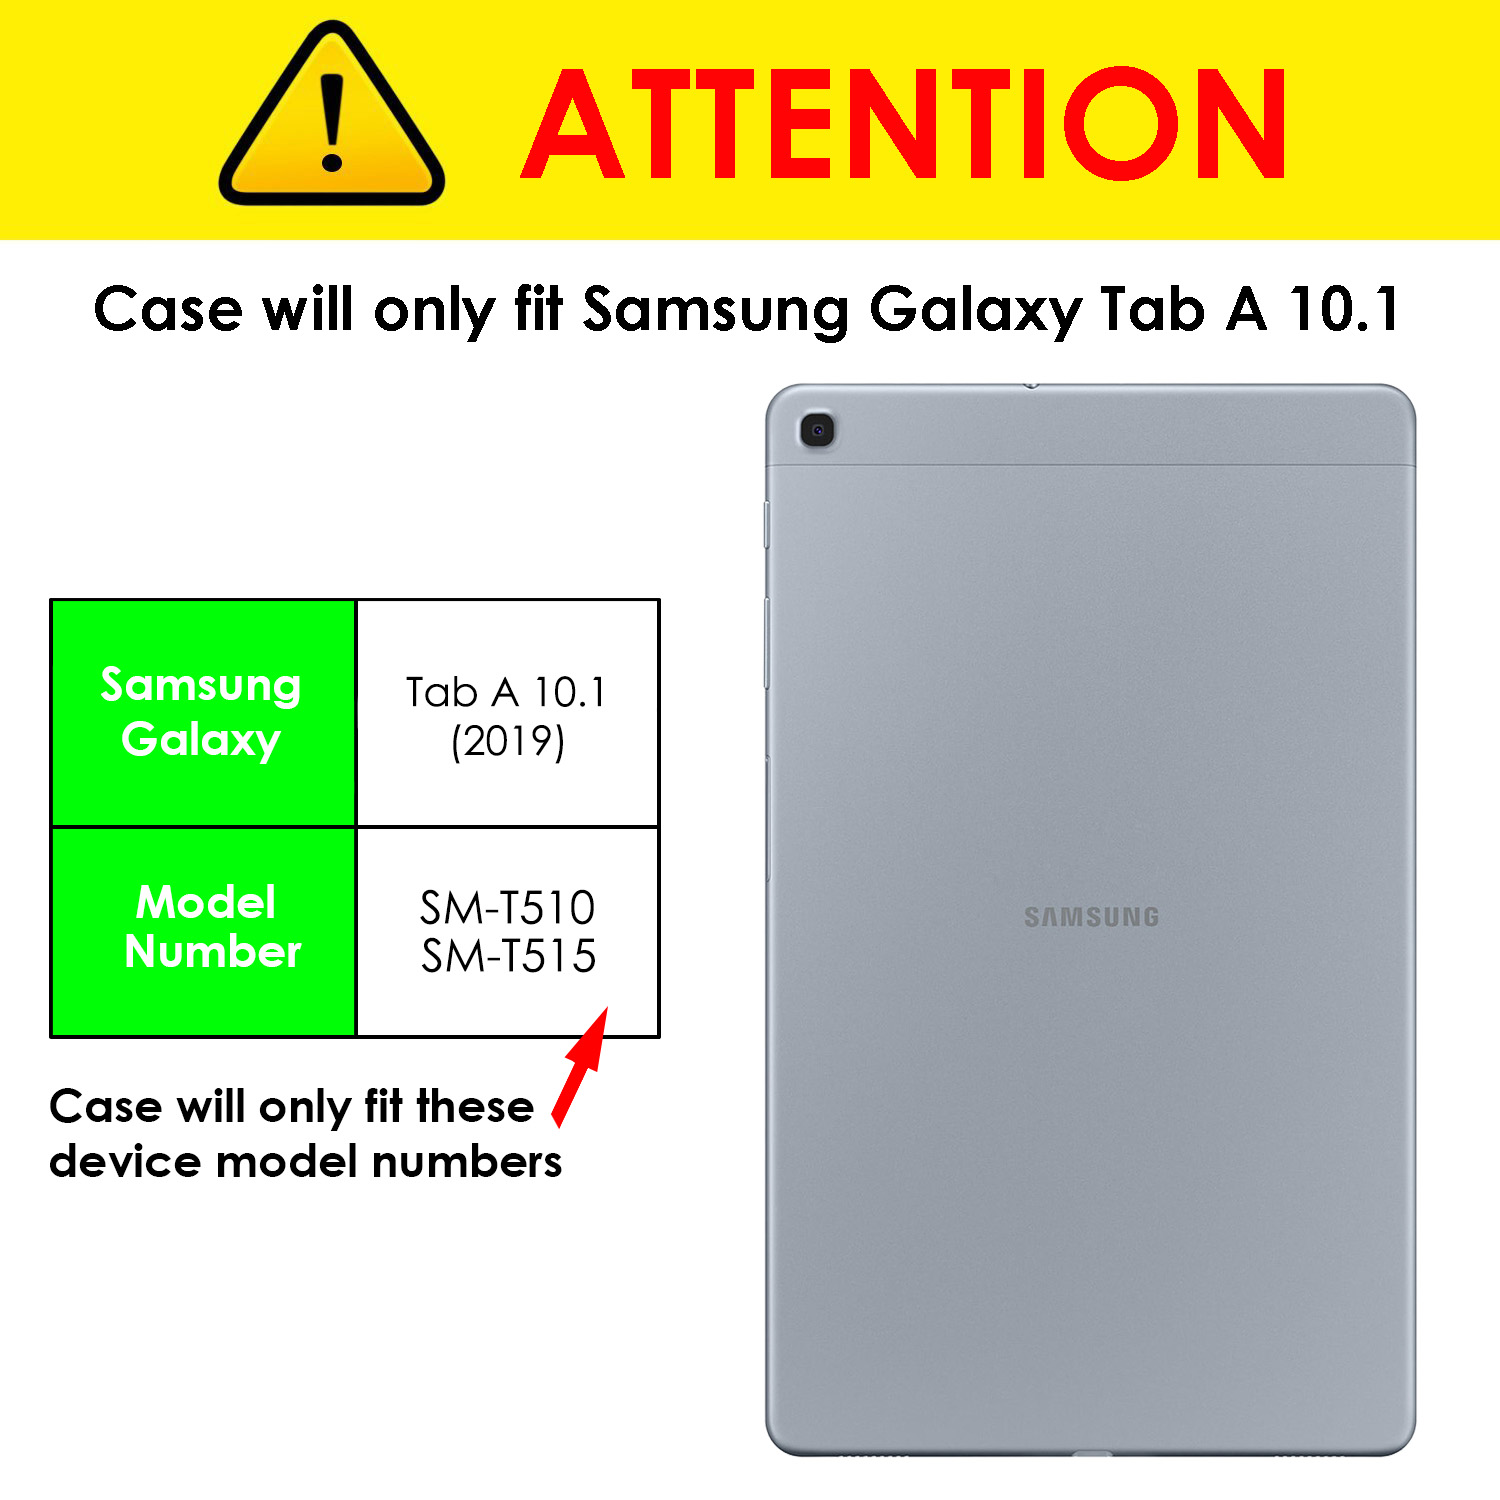 miniature 60 - Samsung Galaxy Tab A 10.1 2019 Étui Magnétique Protection & Support + Stylet